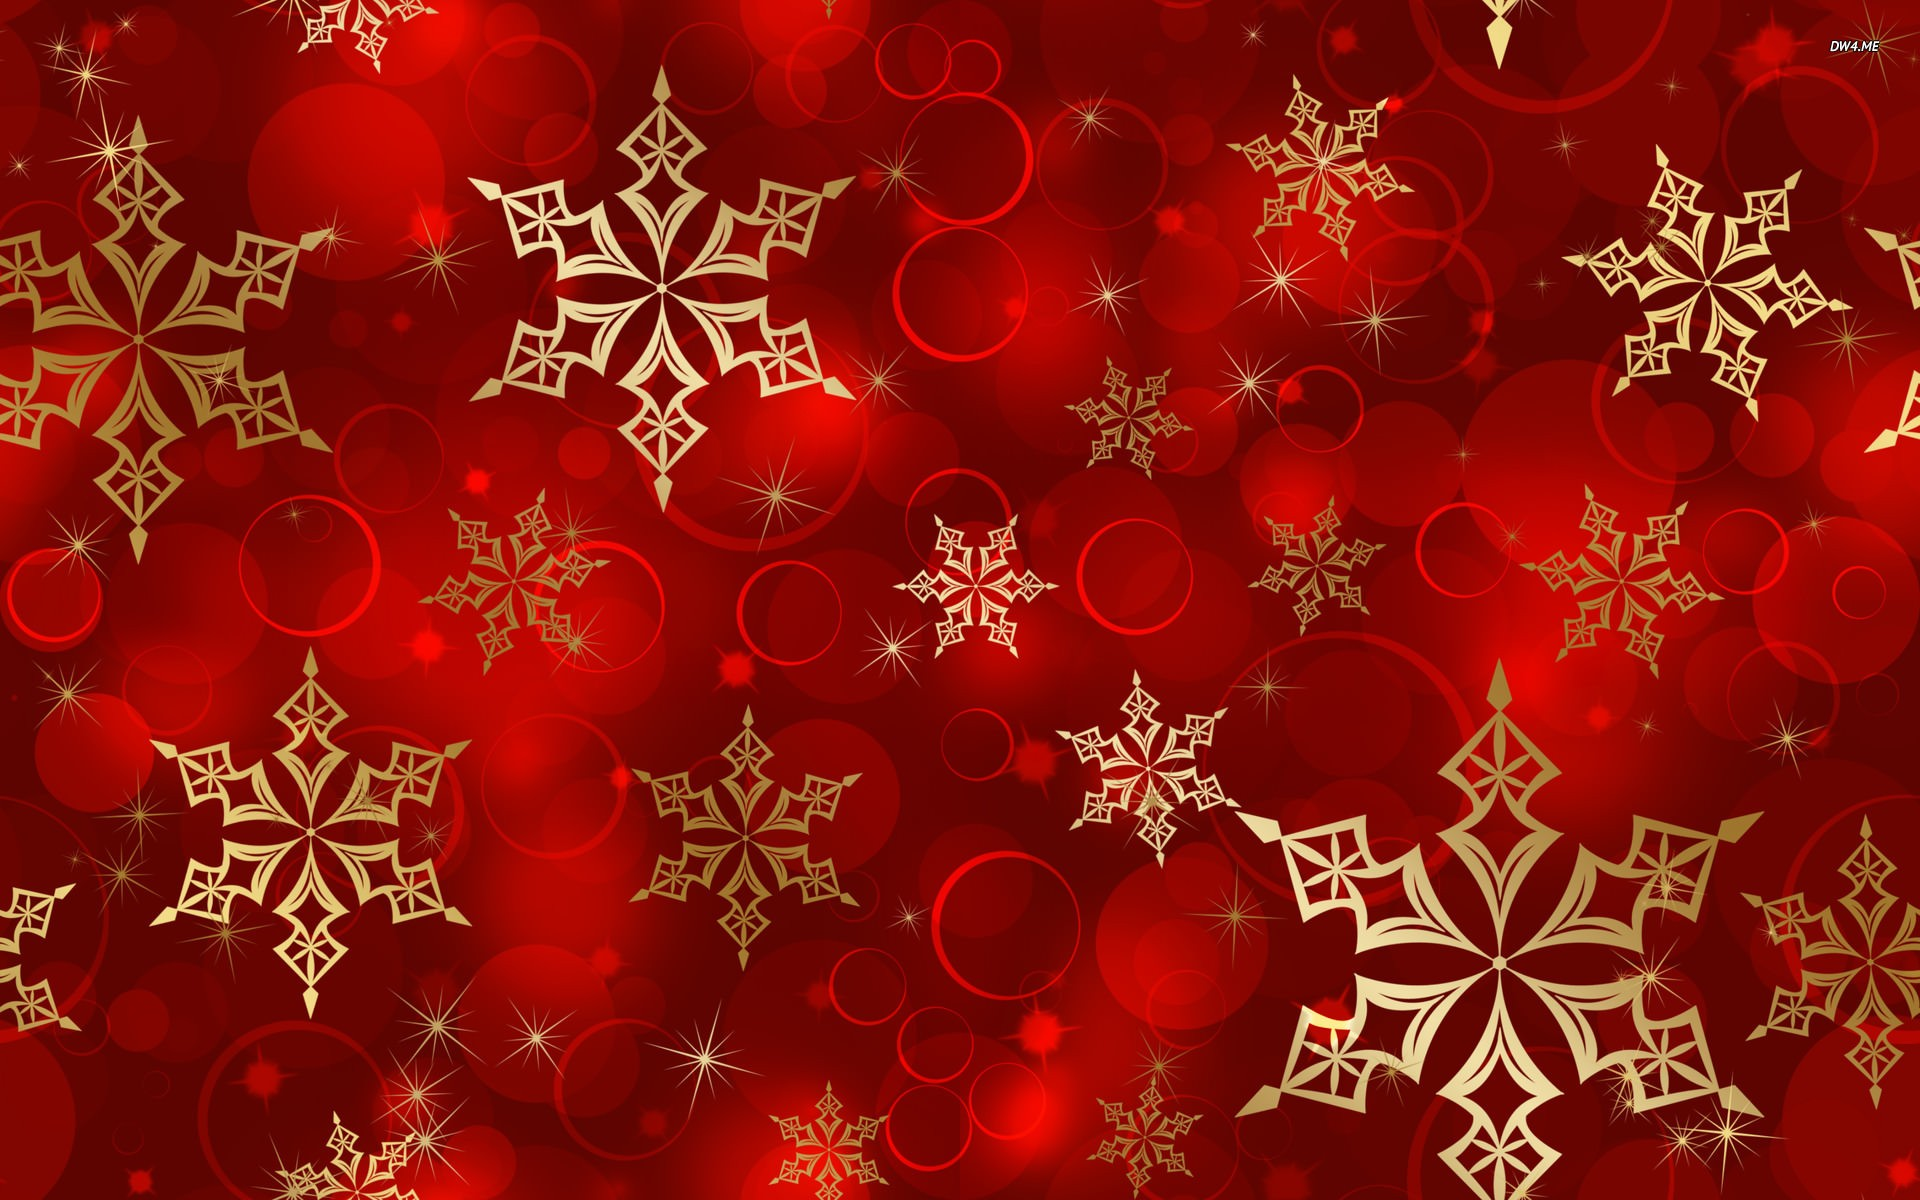 How To Download Wallpaper For Iphone 6 36 Red Christmas Backgrounds 183 ① Download Free Stunning Hd